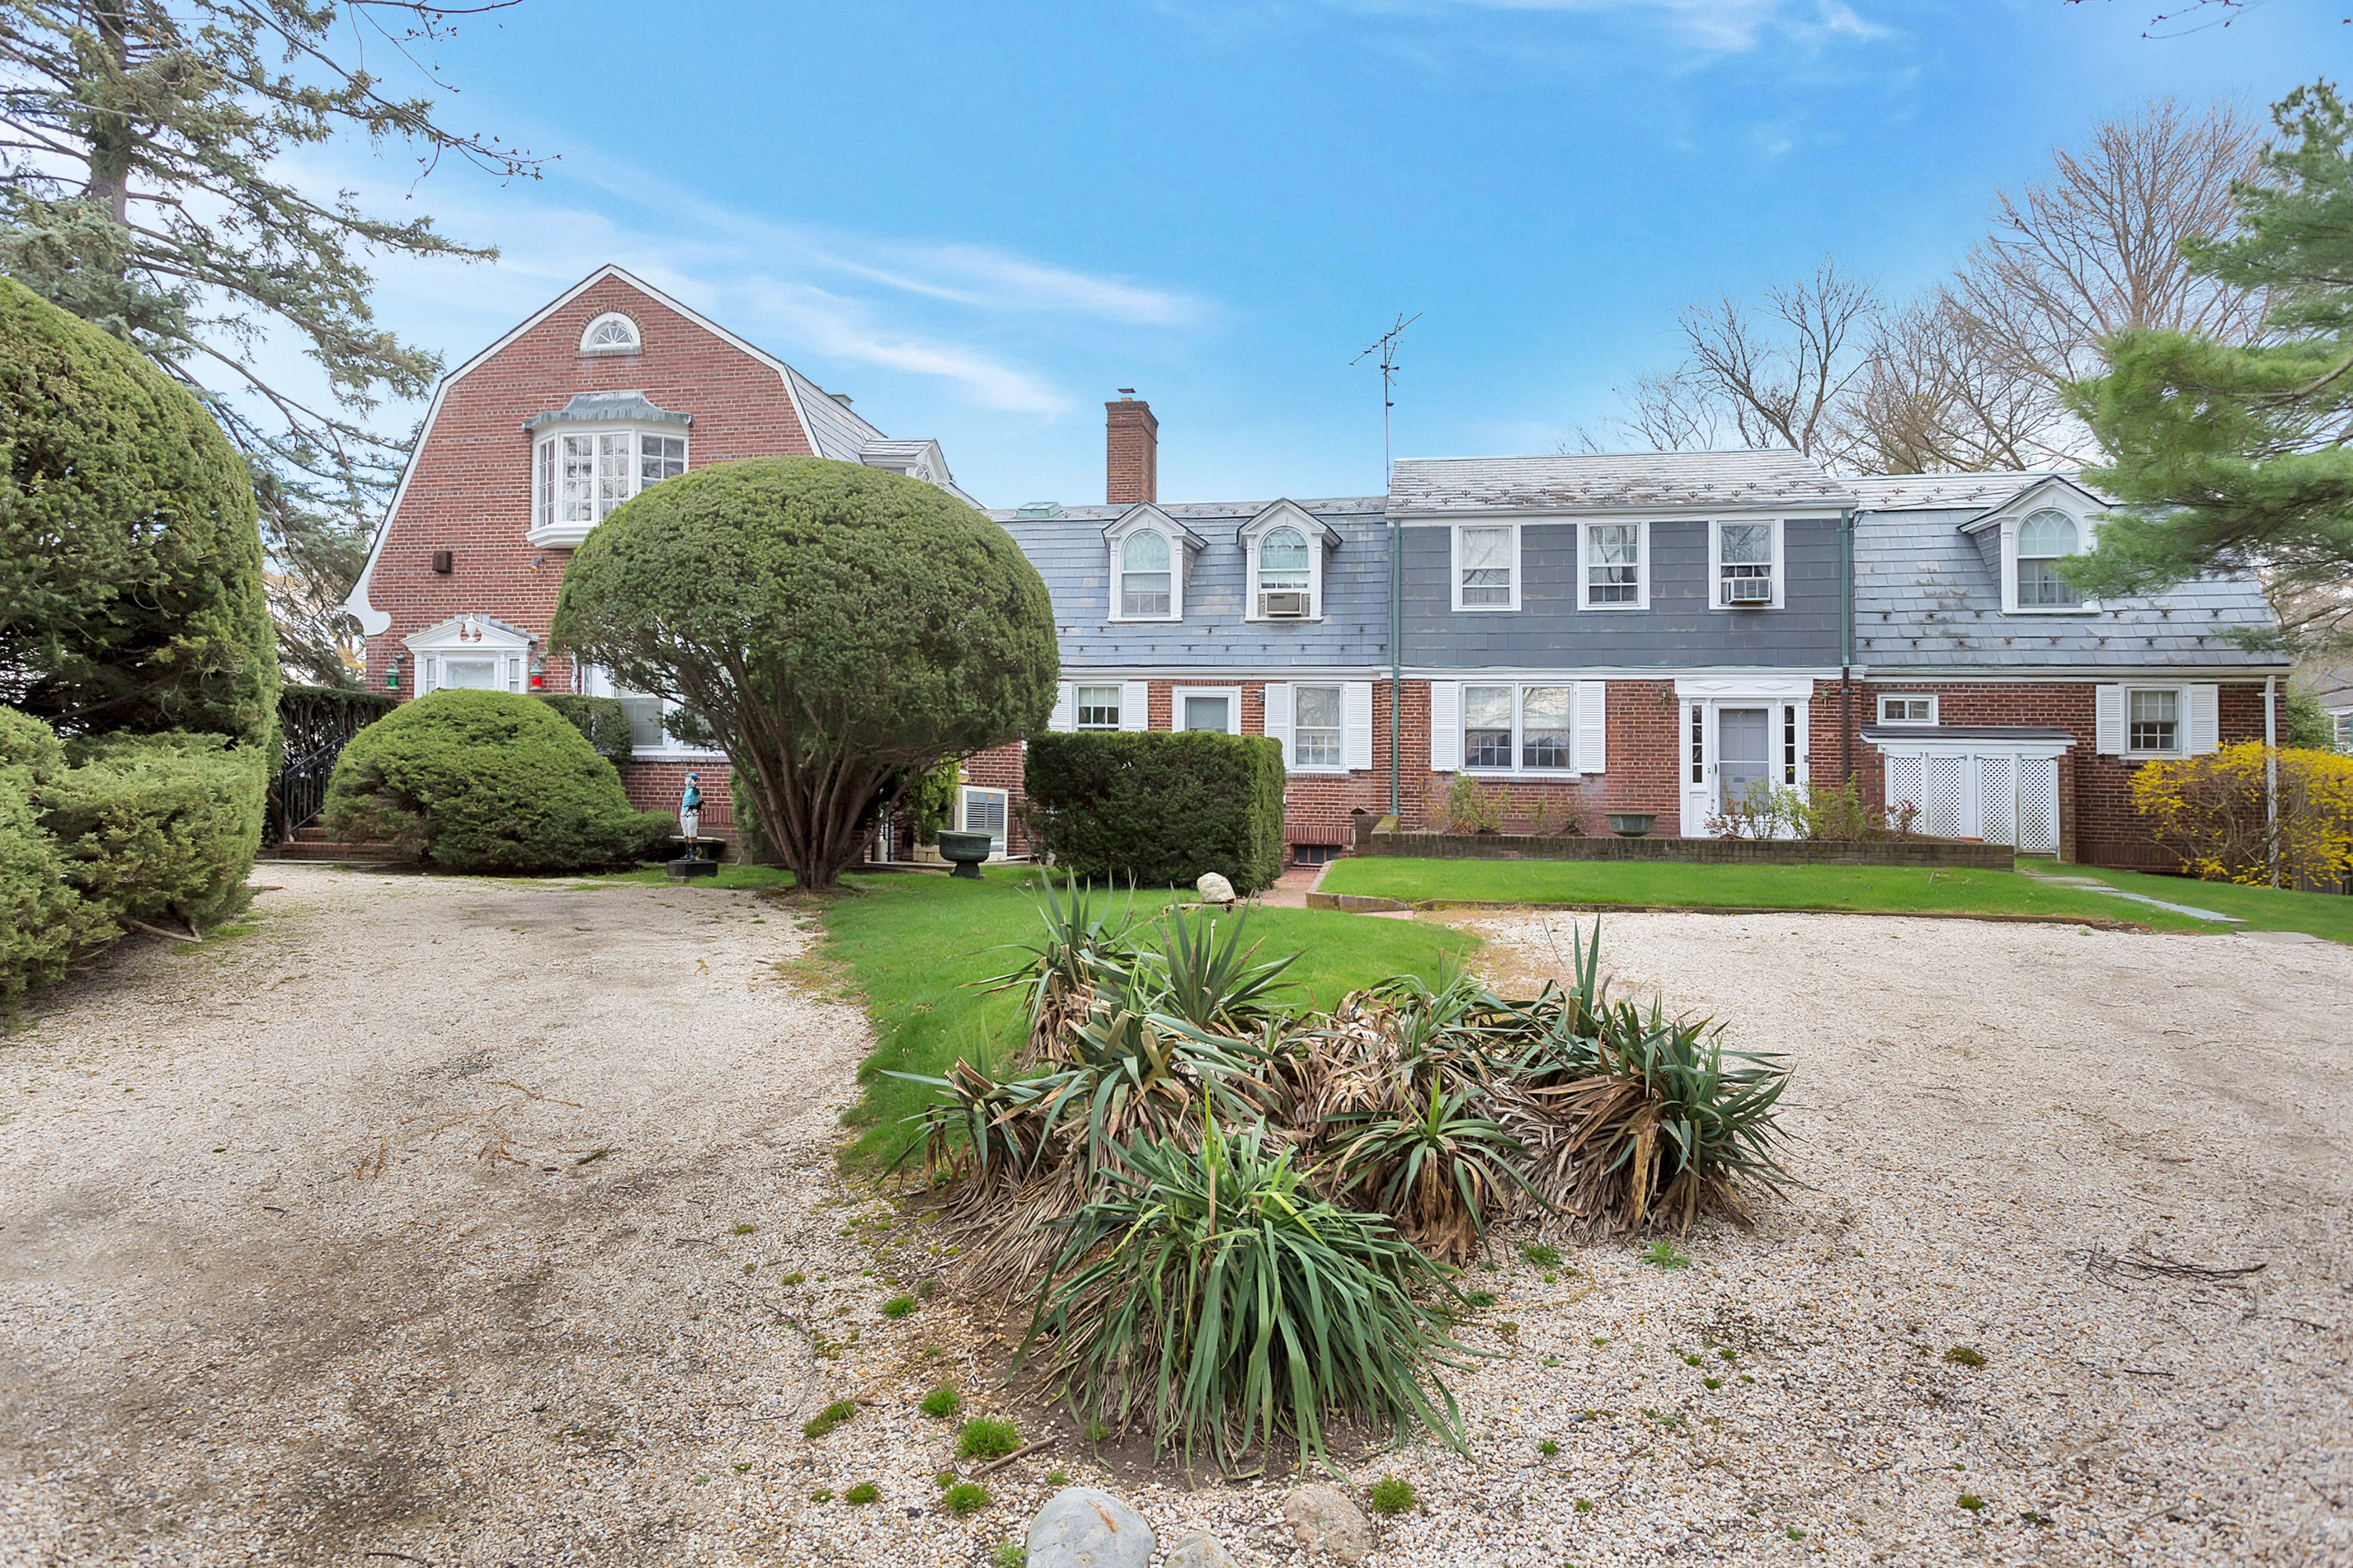 Single Family Home for Sale at Colonial 2 Steamboatlanding Rd Oyster Bay Cove, New York, 11771 United States